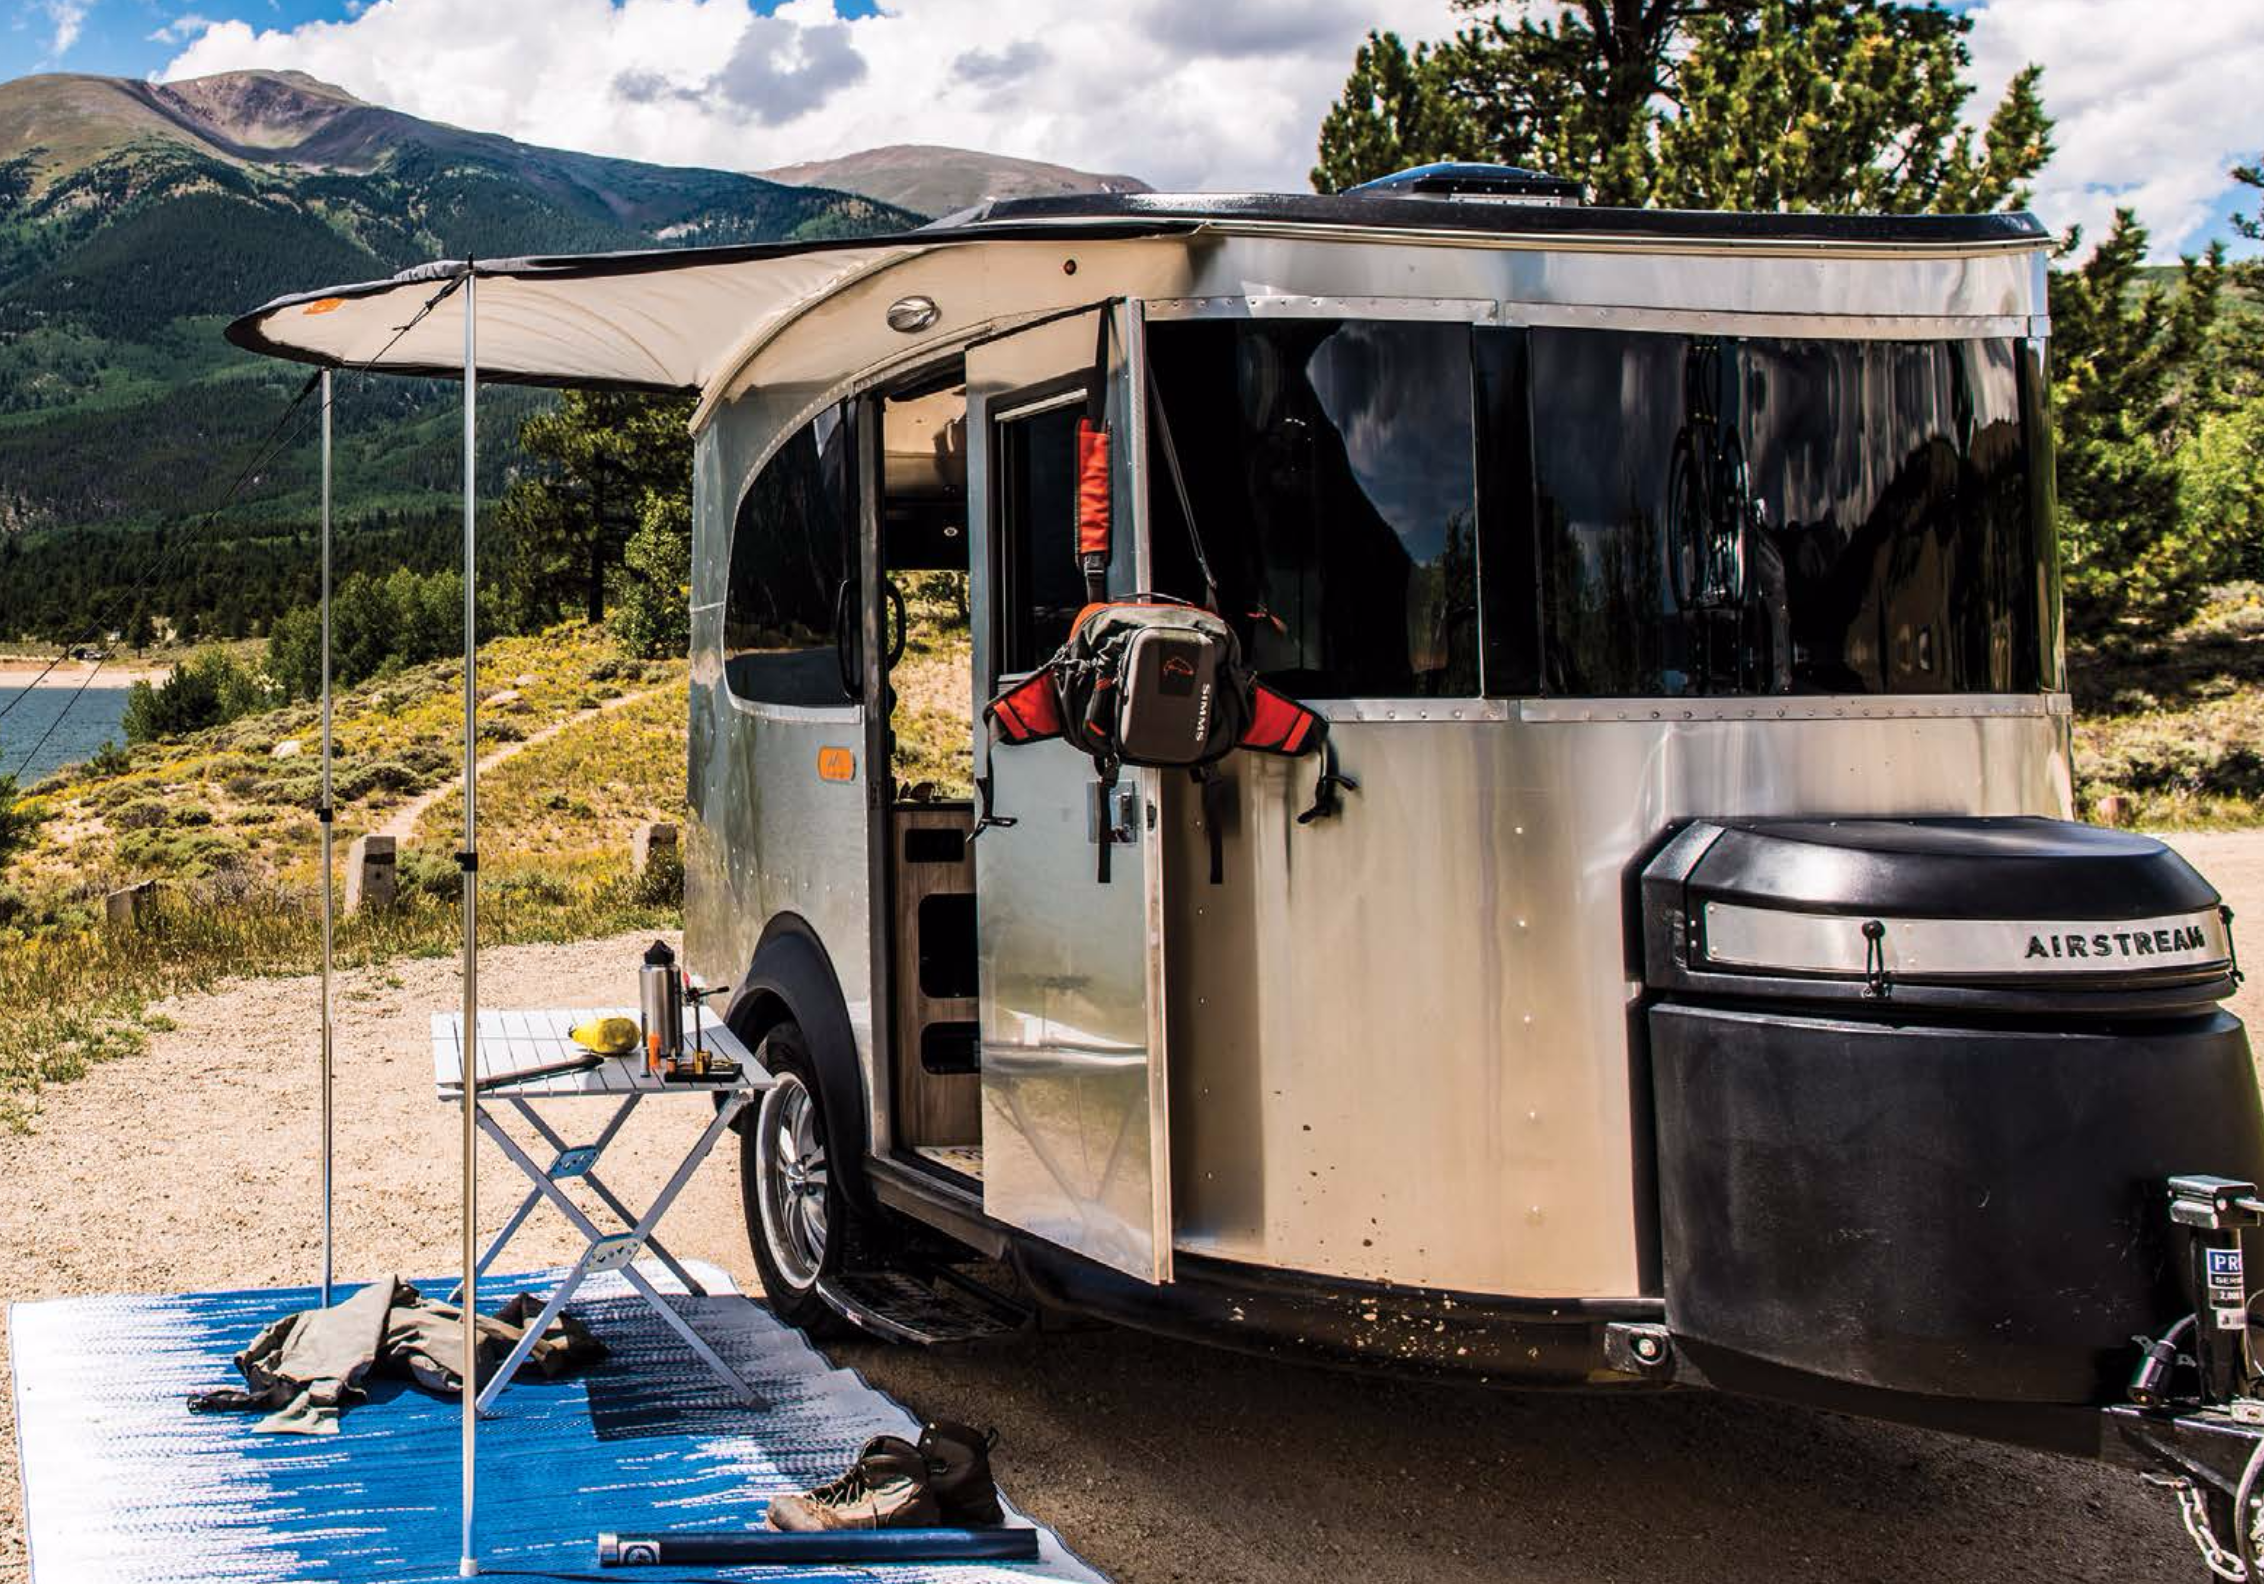 Airstream intros more rugged Basecamp X designed for outdoor